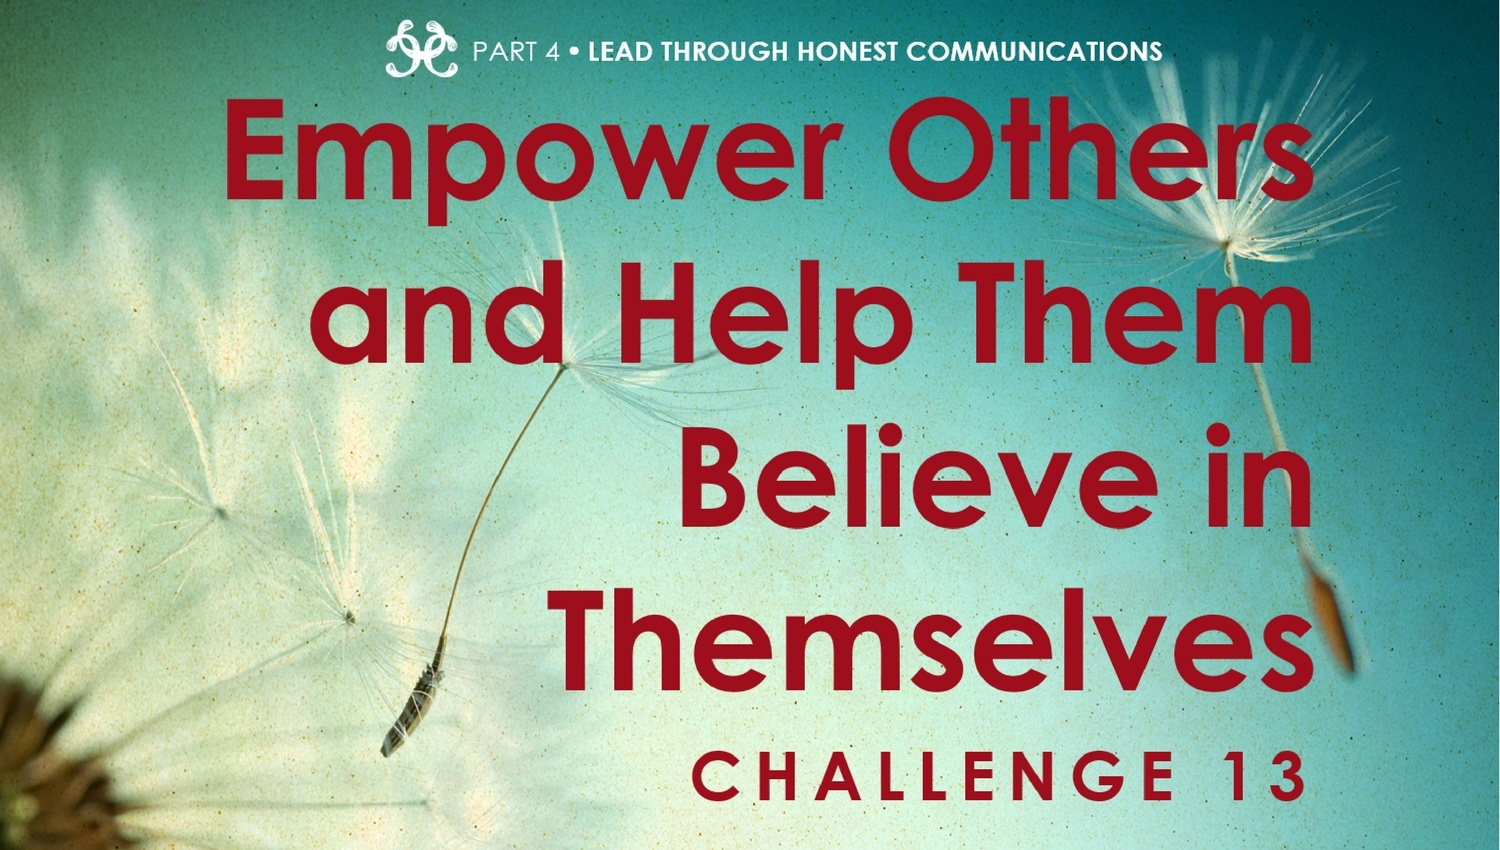 Courageous-Comm-Quest-Empower-others.jpg